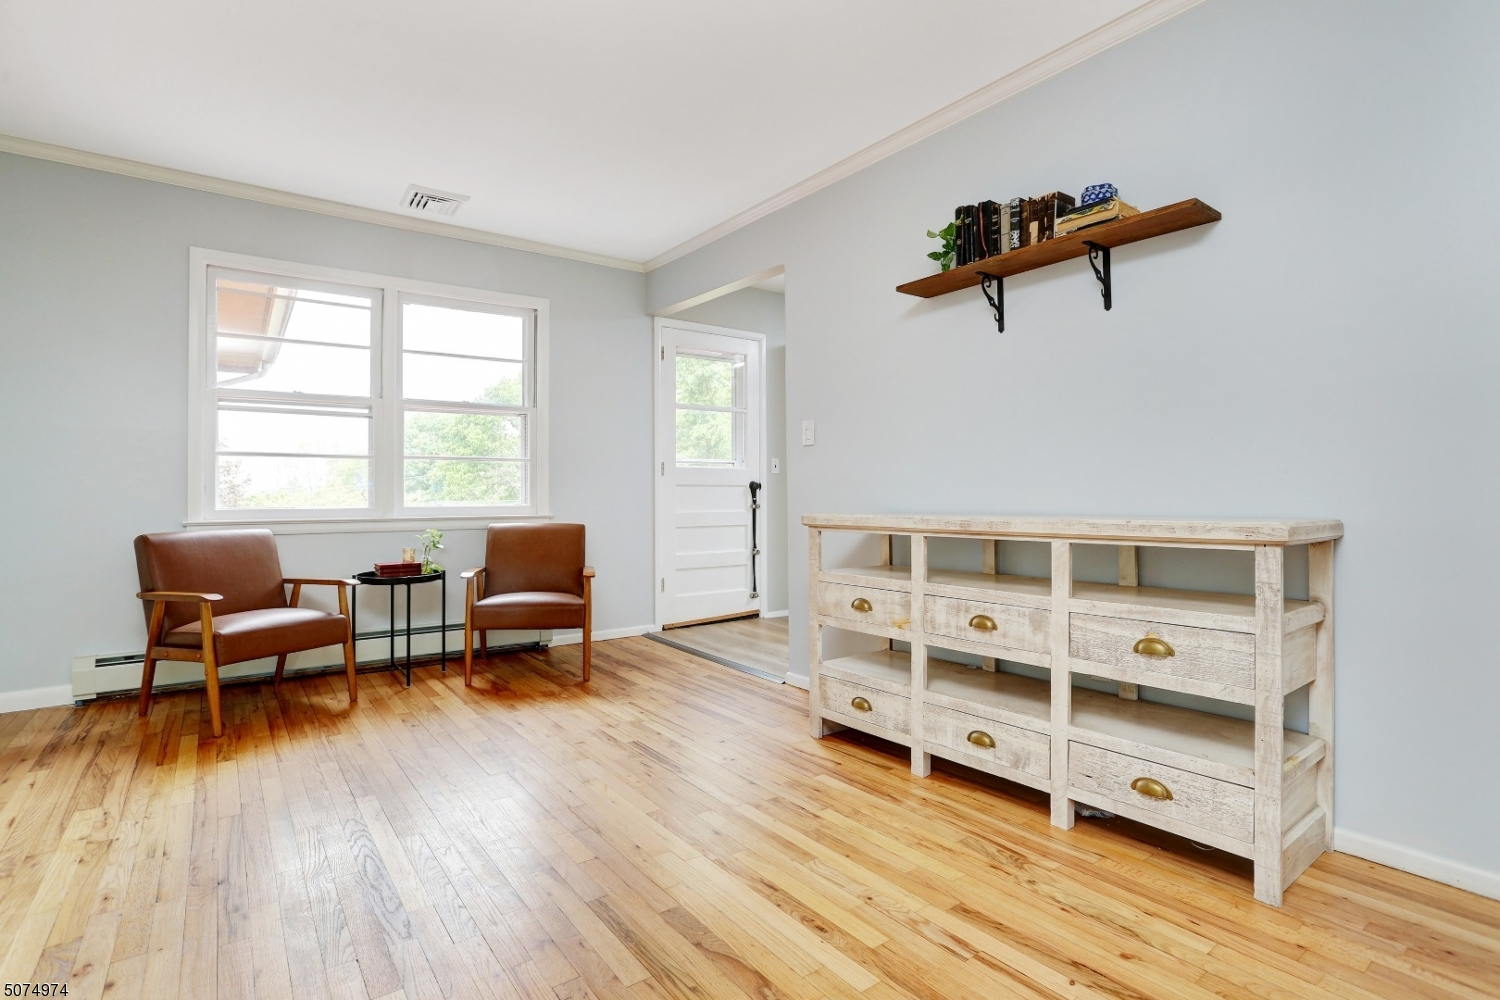 Newly refinished hardwood floors surround the perimeter of this additional dining area. Two double hung windows contribute tons of natural sunlight to this already radiant room.